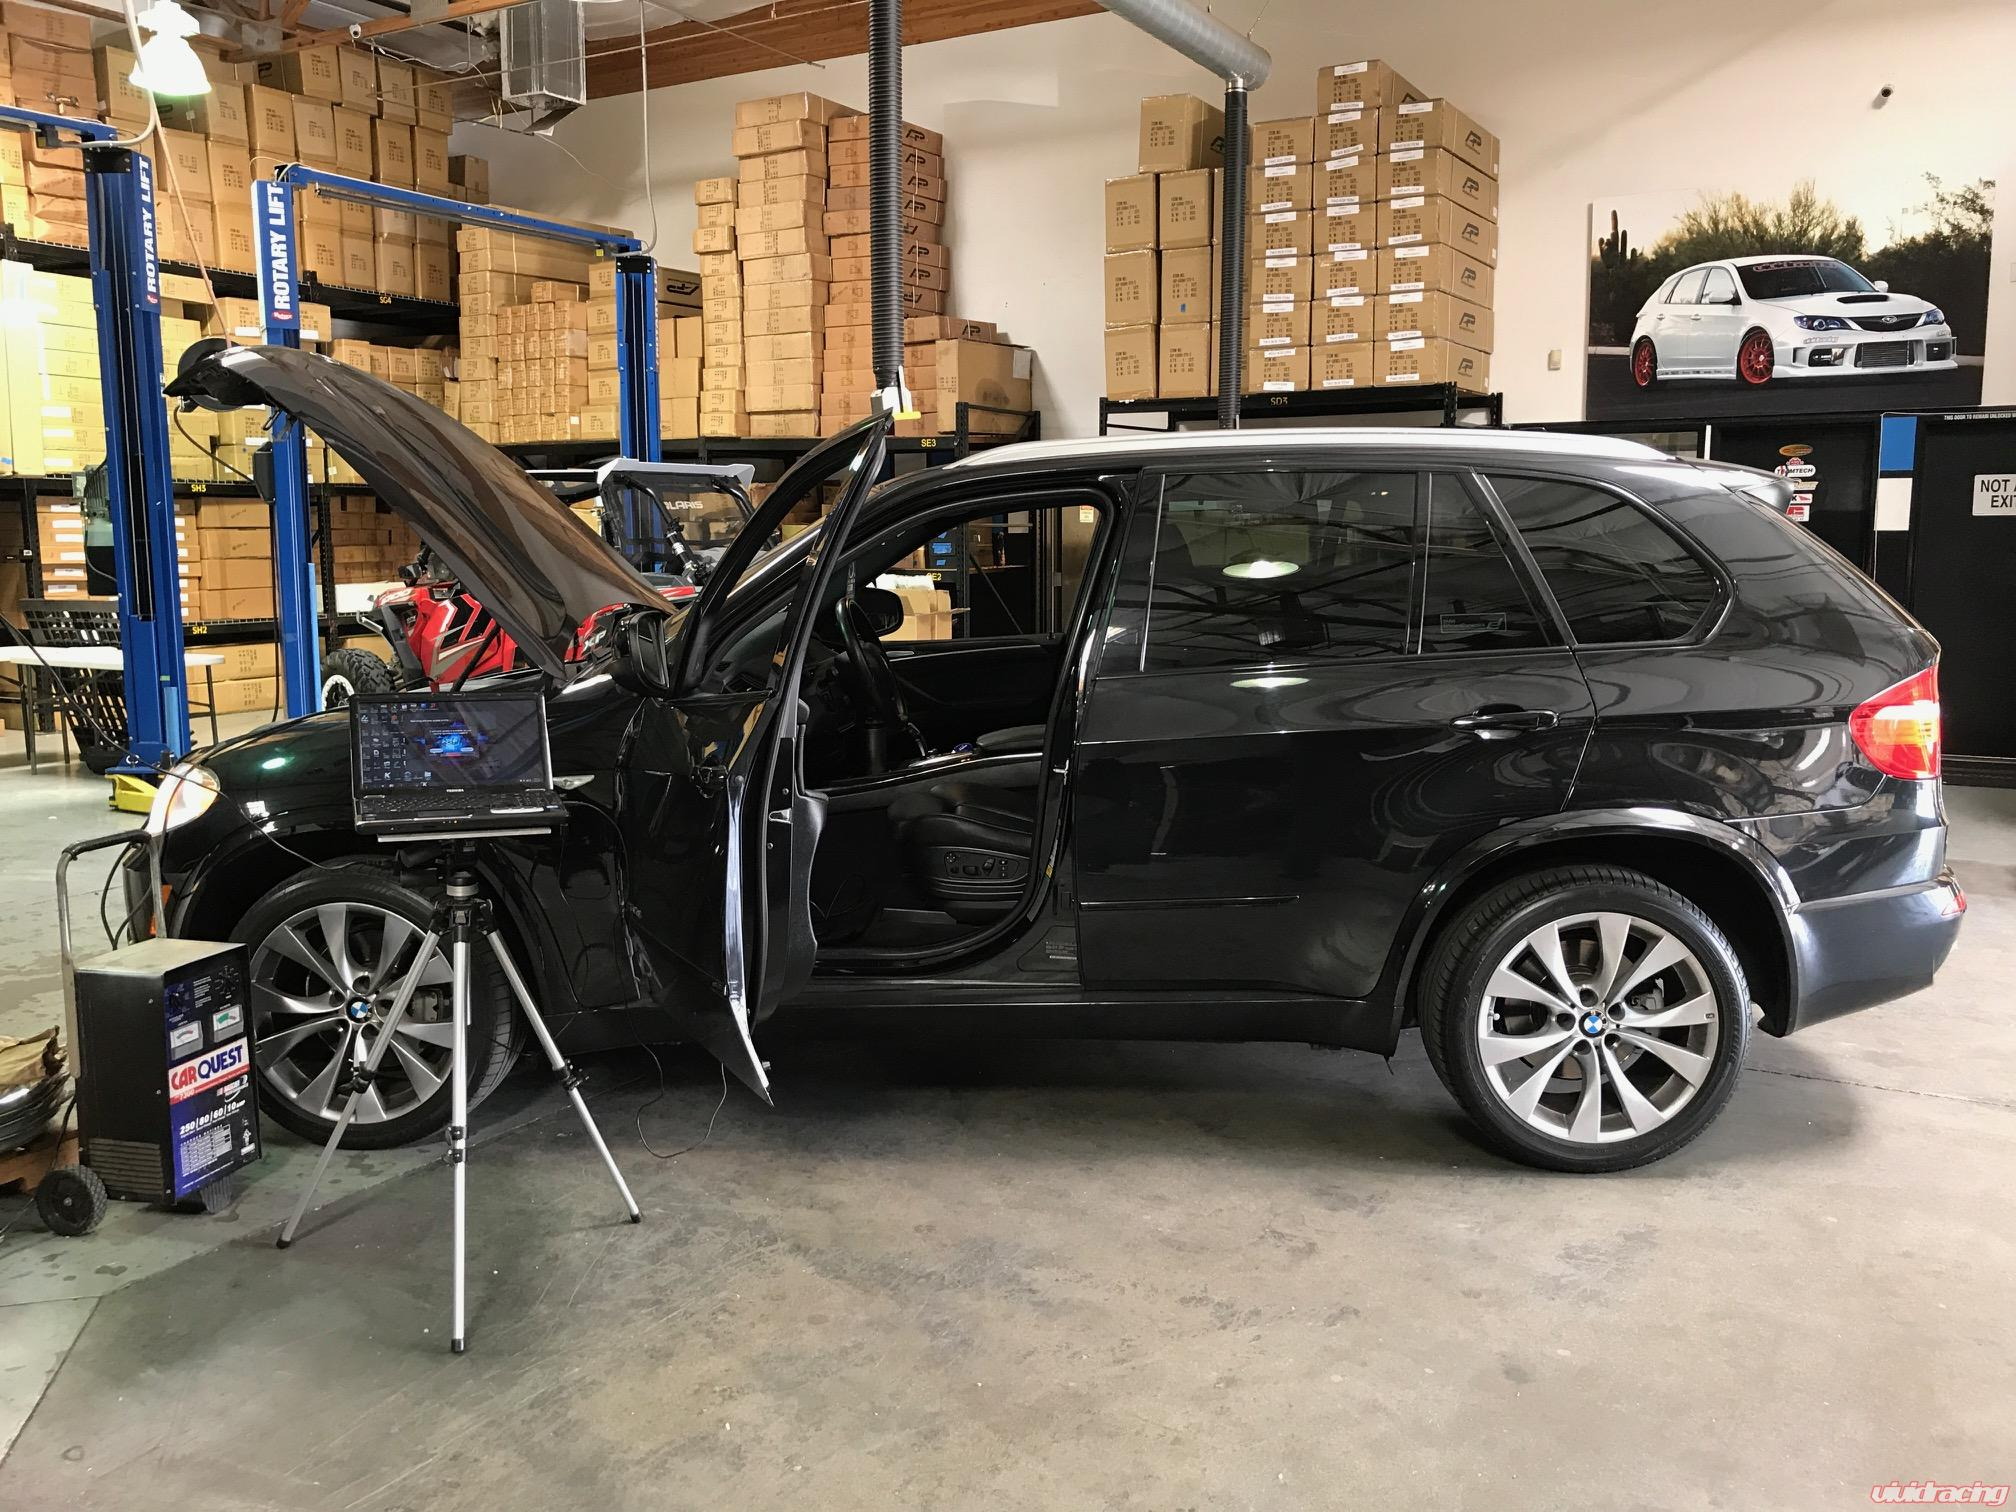 vr tuned ecu flash tune bmw x5 xdrive30si e70 n62 07 13. Black Bedroom Furniture Sets. Home Design Ideas